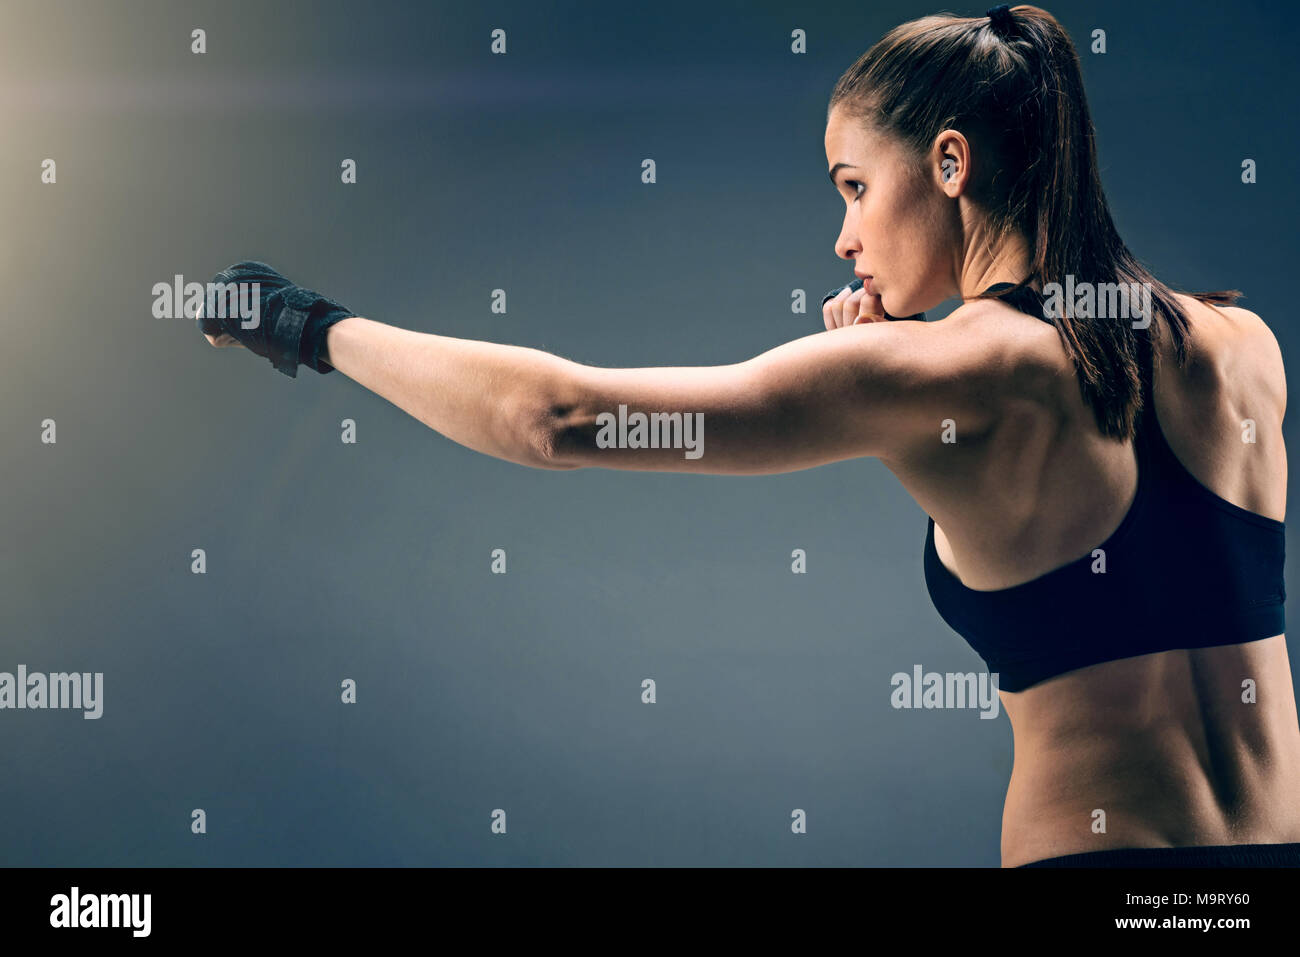 Side view of young sportswoman punching over background - Stock Image